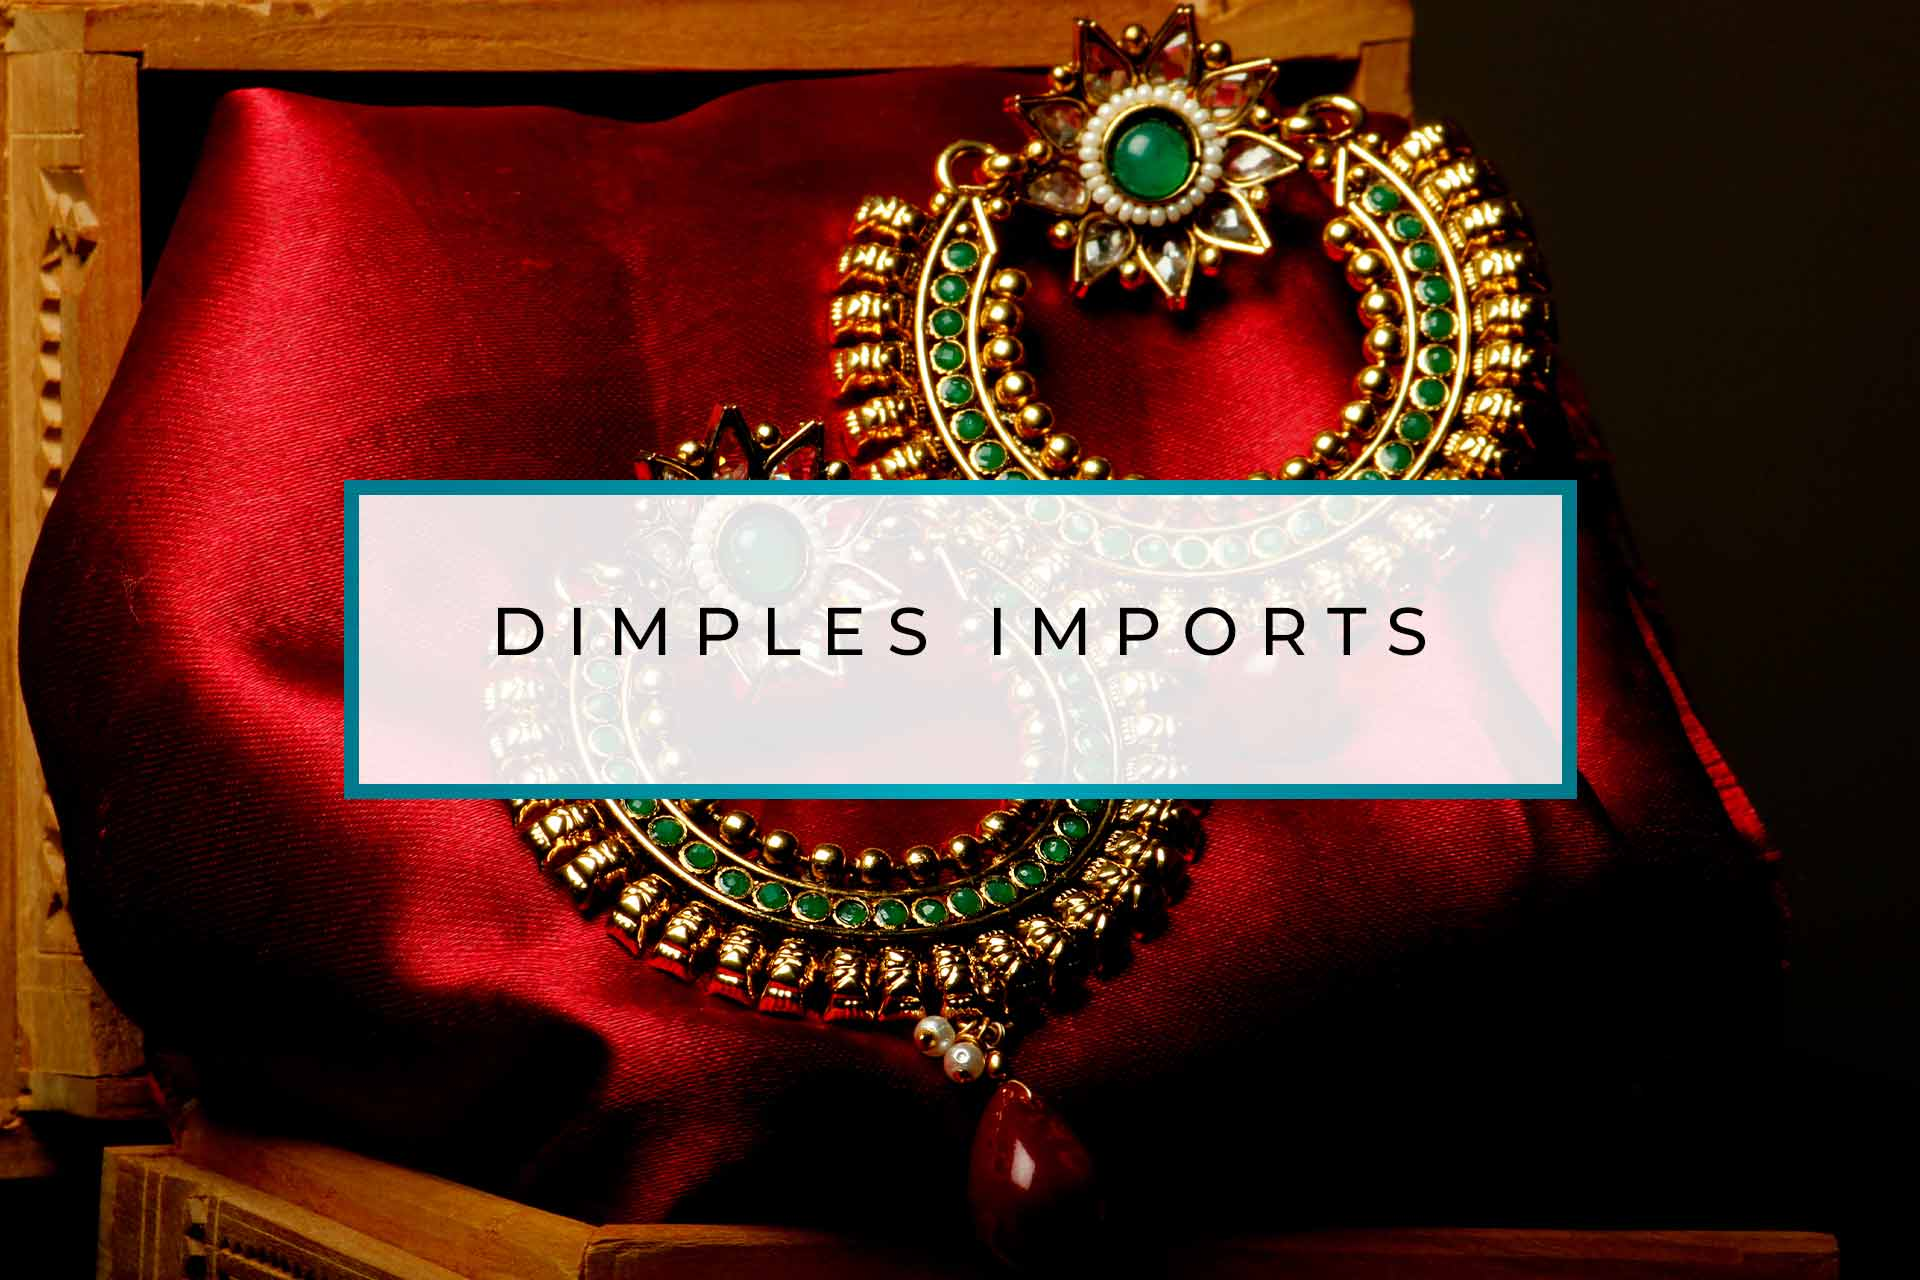 Dimples Imports